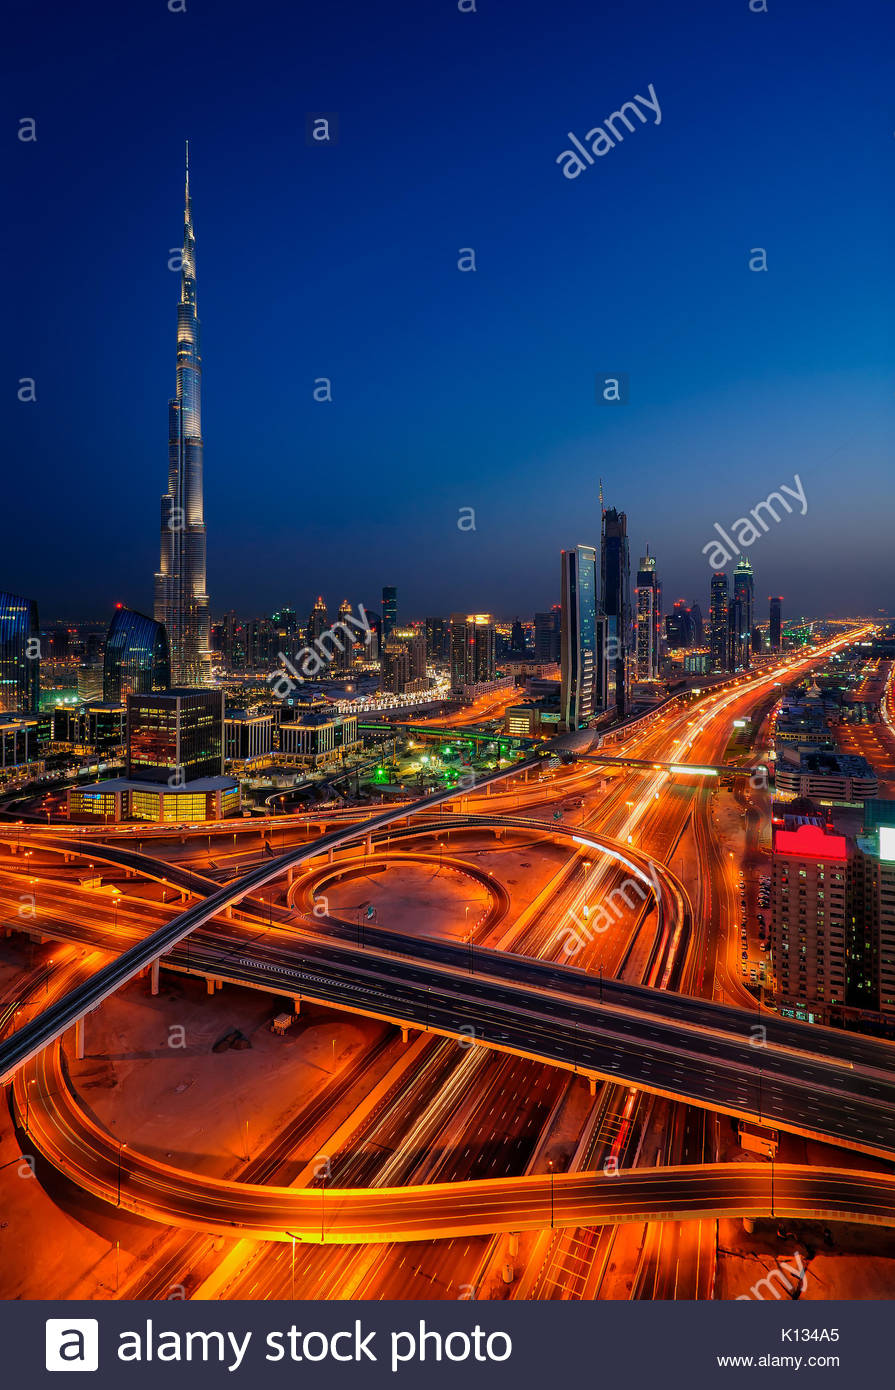 Amazing night dubai downtown skyline with tallest skyscrapers and beautiful sky, Dubai, United Arab Emirates - Stock Image